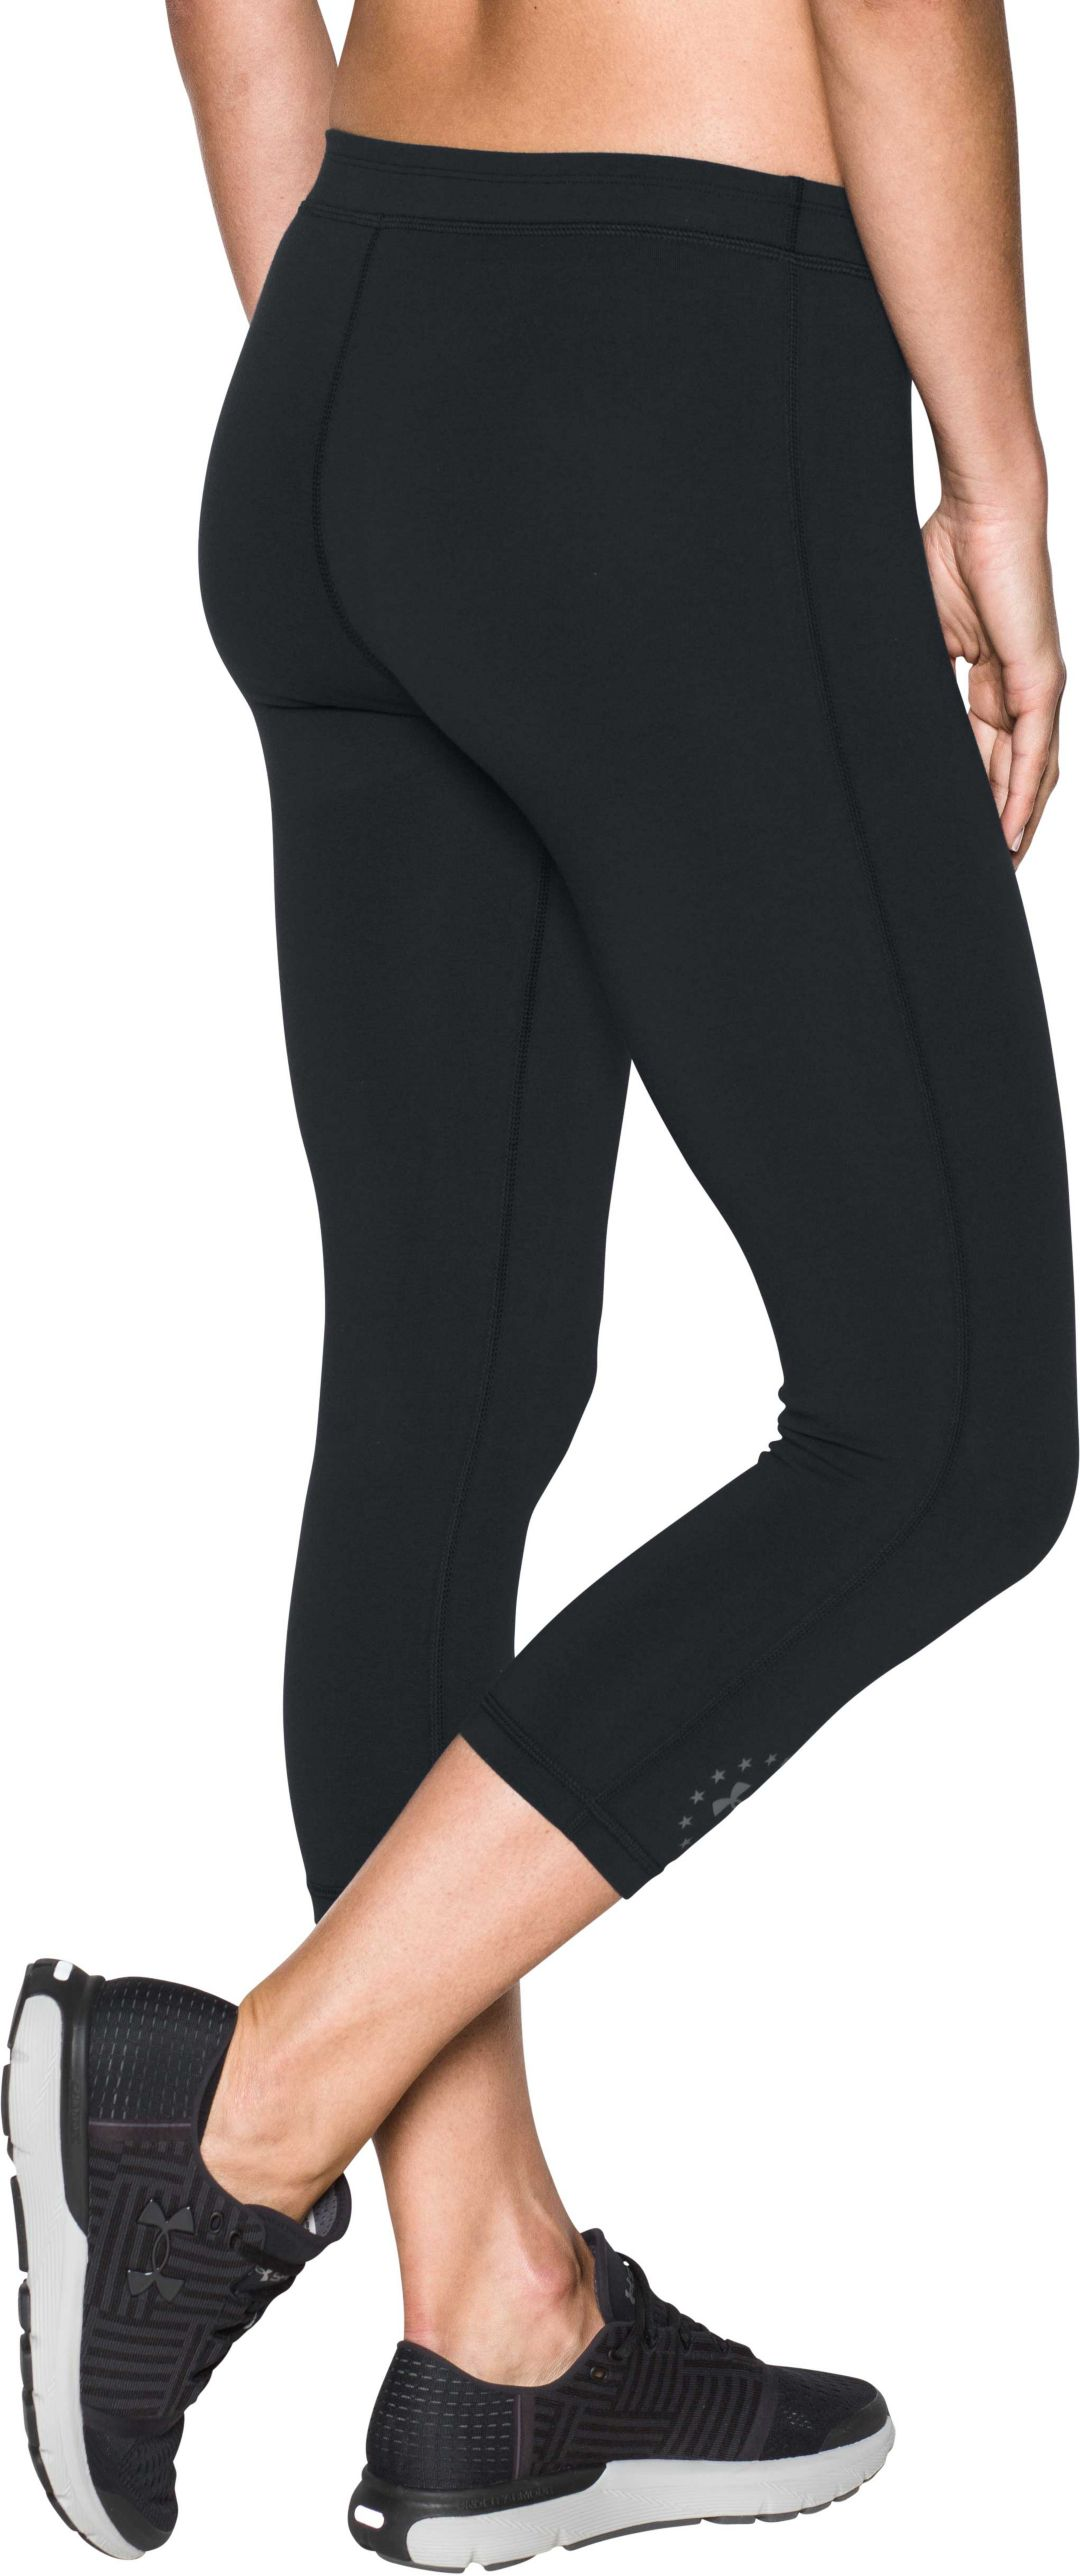 54d5bc2fb542d9 Under Armour Women's Freedom Training Capri Leggings | DICK'S ...